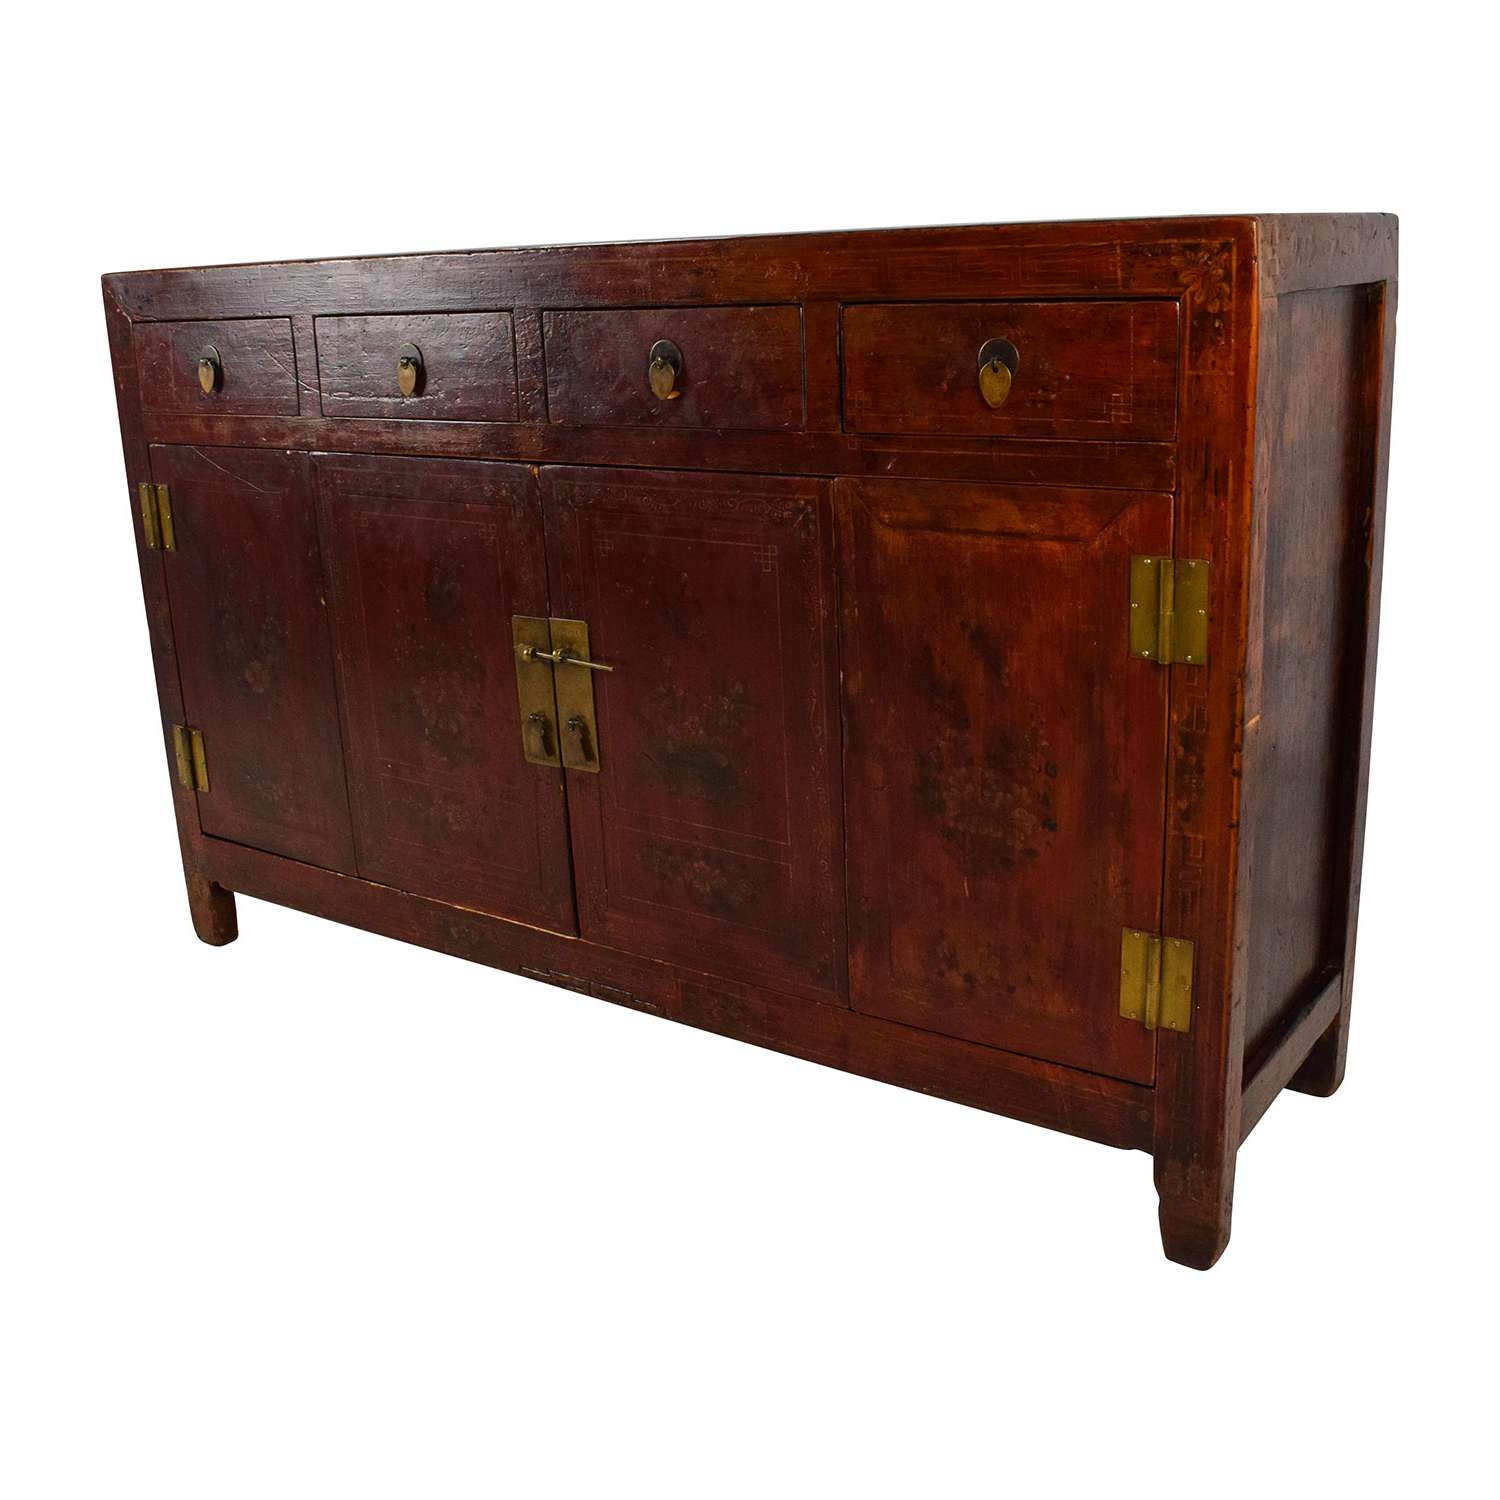 66% Off – Solid Wood Southeast Asian Credenza / Storage Within Asian Sideboards (View 7 of 20)